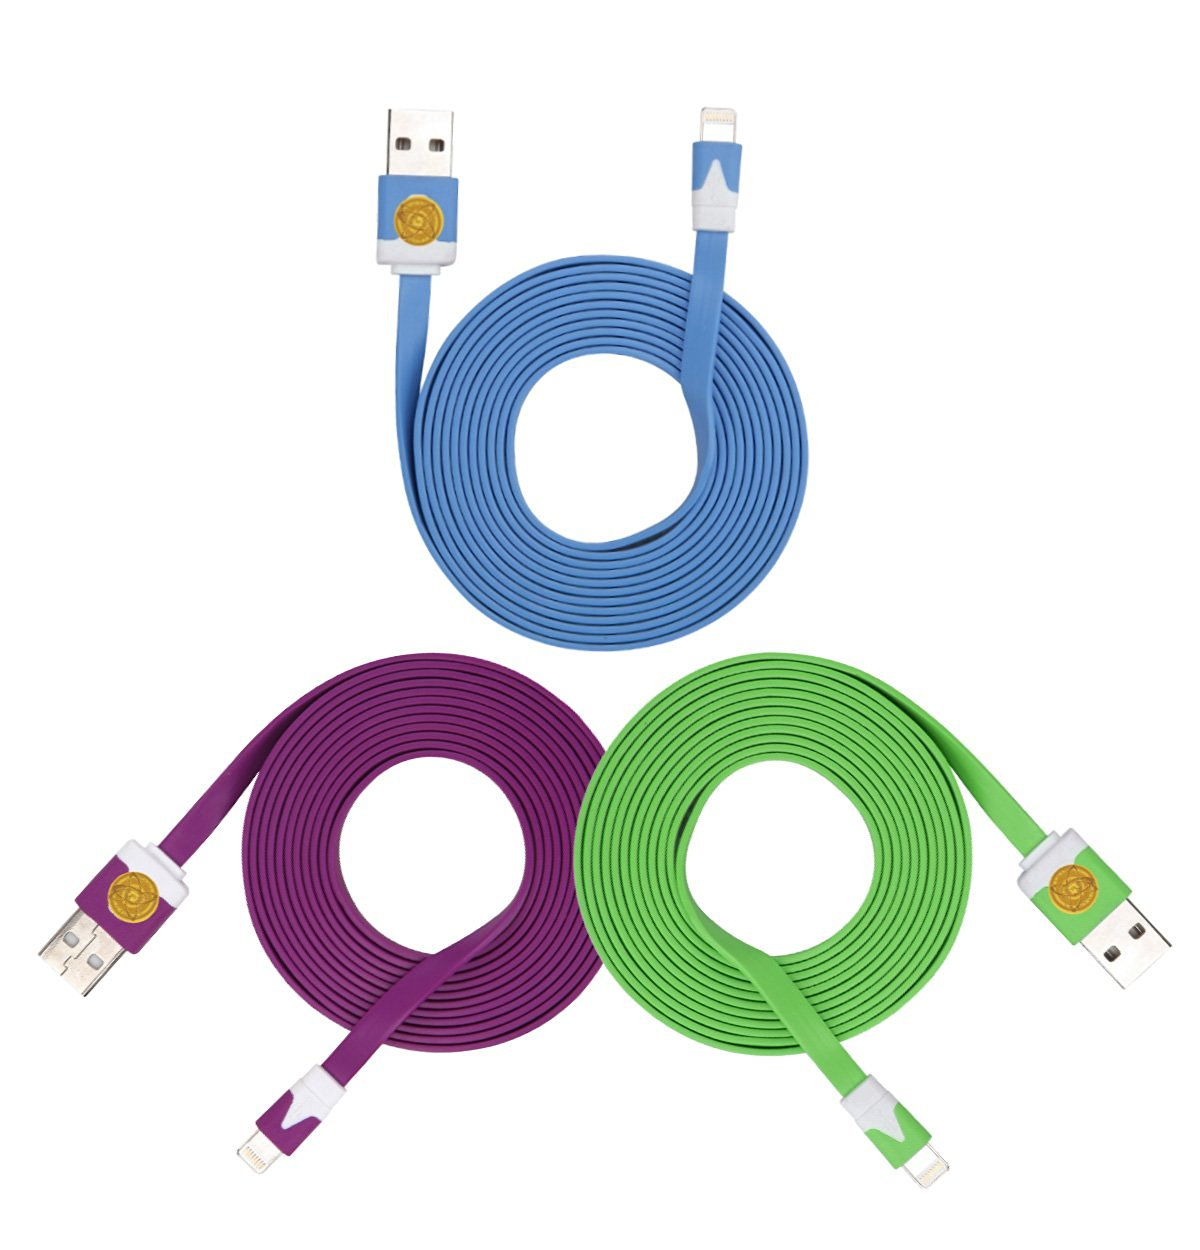 2M Heavy Duty Flat Noodle Lightning USB Cable for Apple iPhone 6,6S -Ple Blu Grn